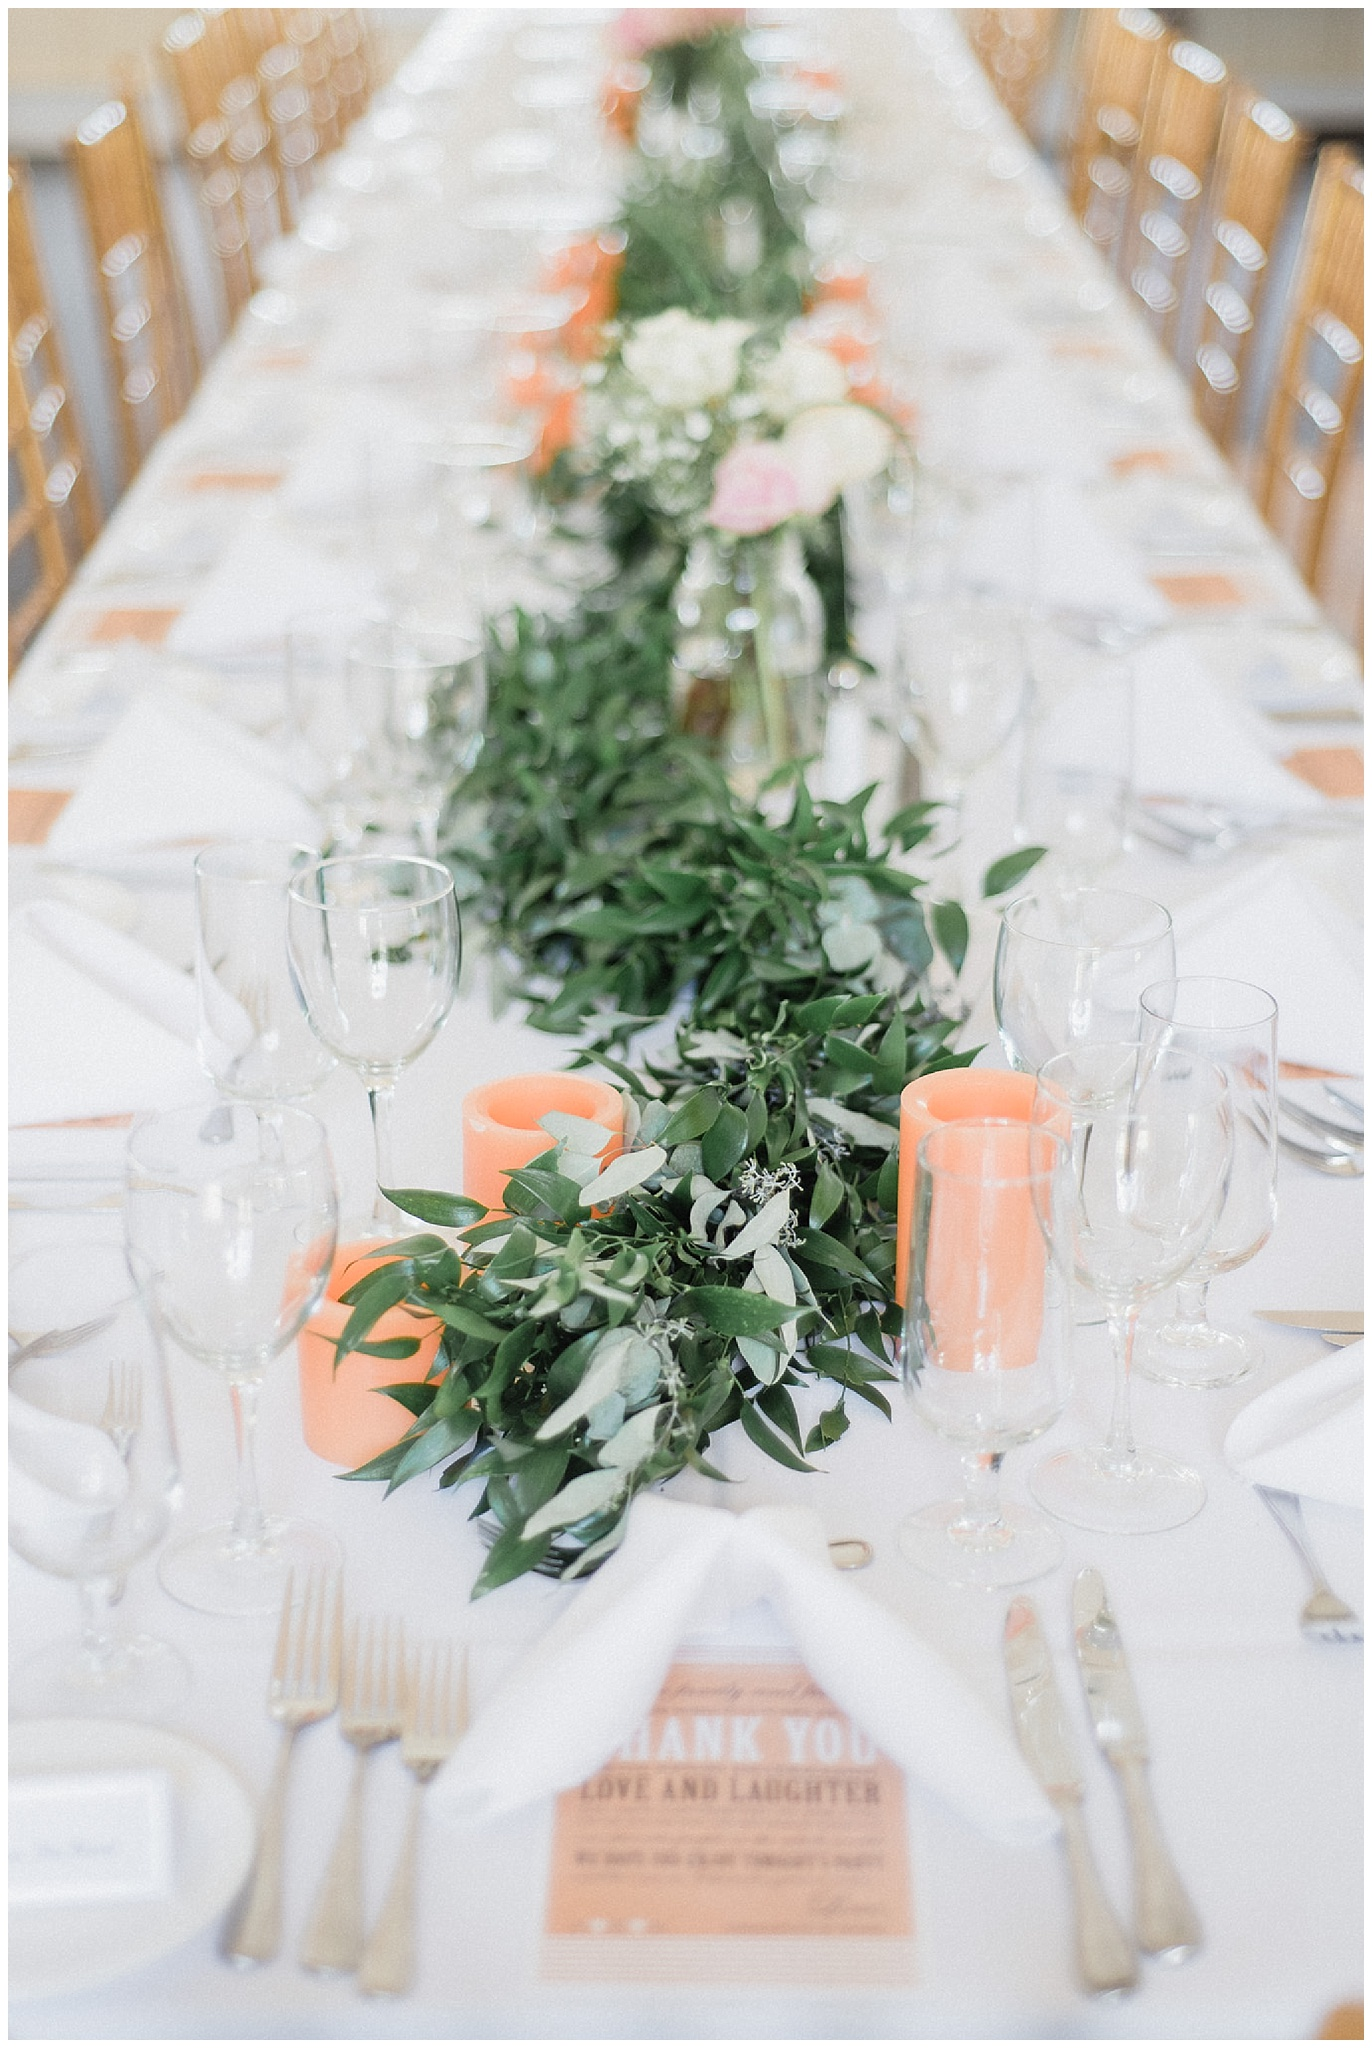 Rustic reception decor with garland and greenery at Tralee Wedding Facility, photographed by Jenn Kavanagh Photography